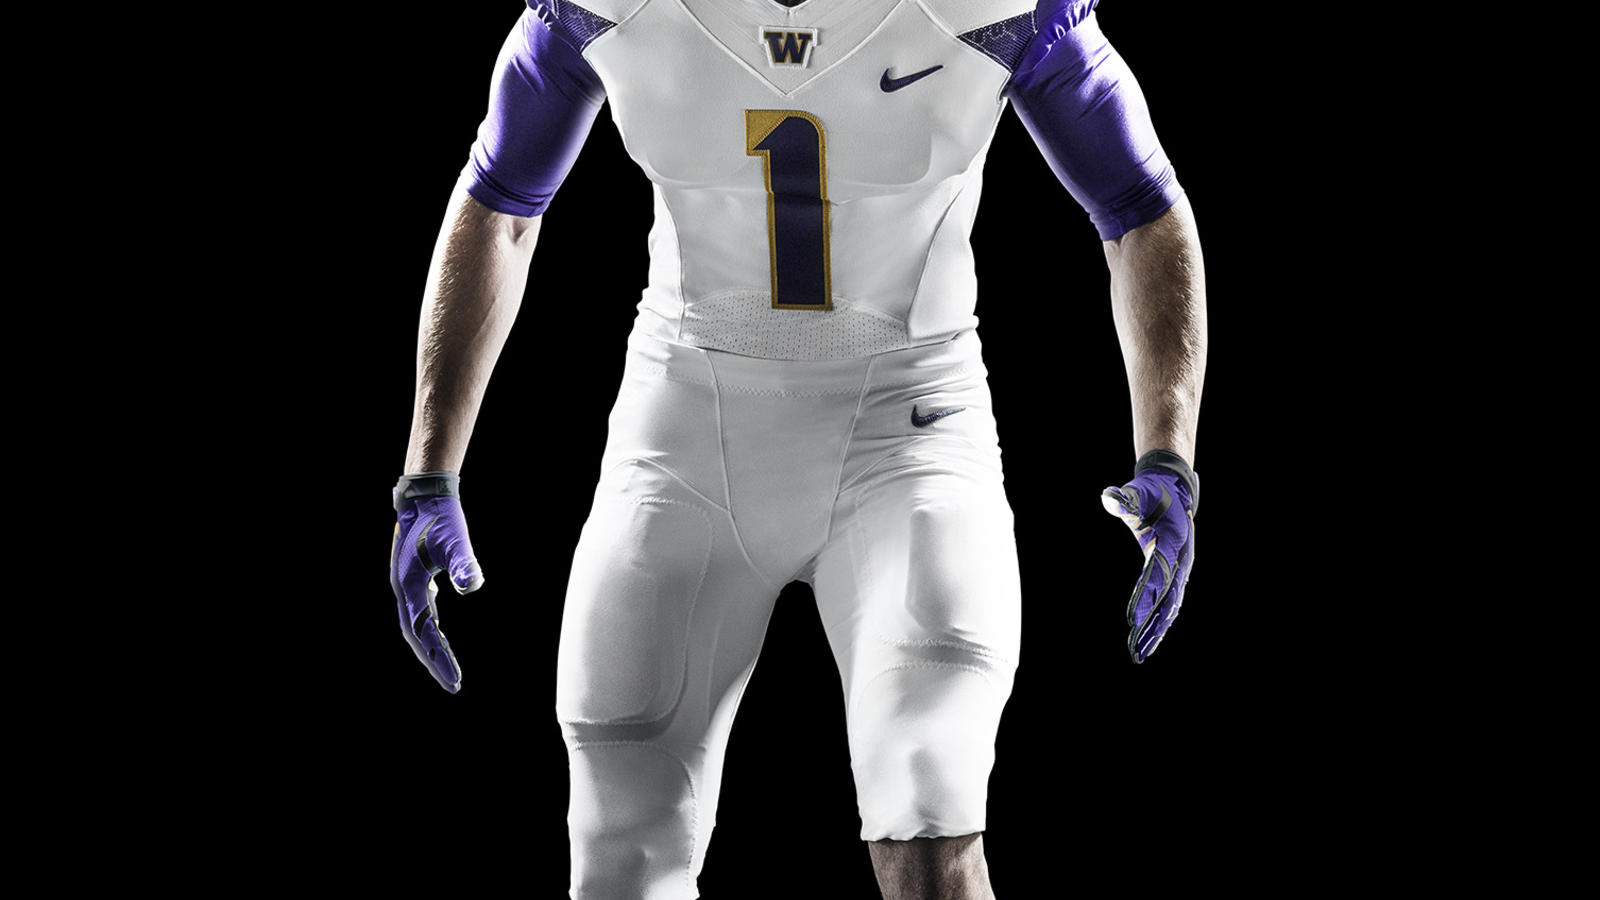 new style 308d0 e33de Washington Unveils New 2014 Nike Football Uniforms - Nike News